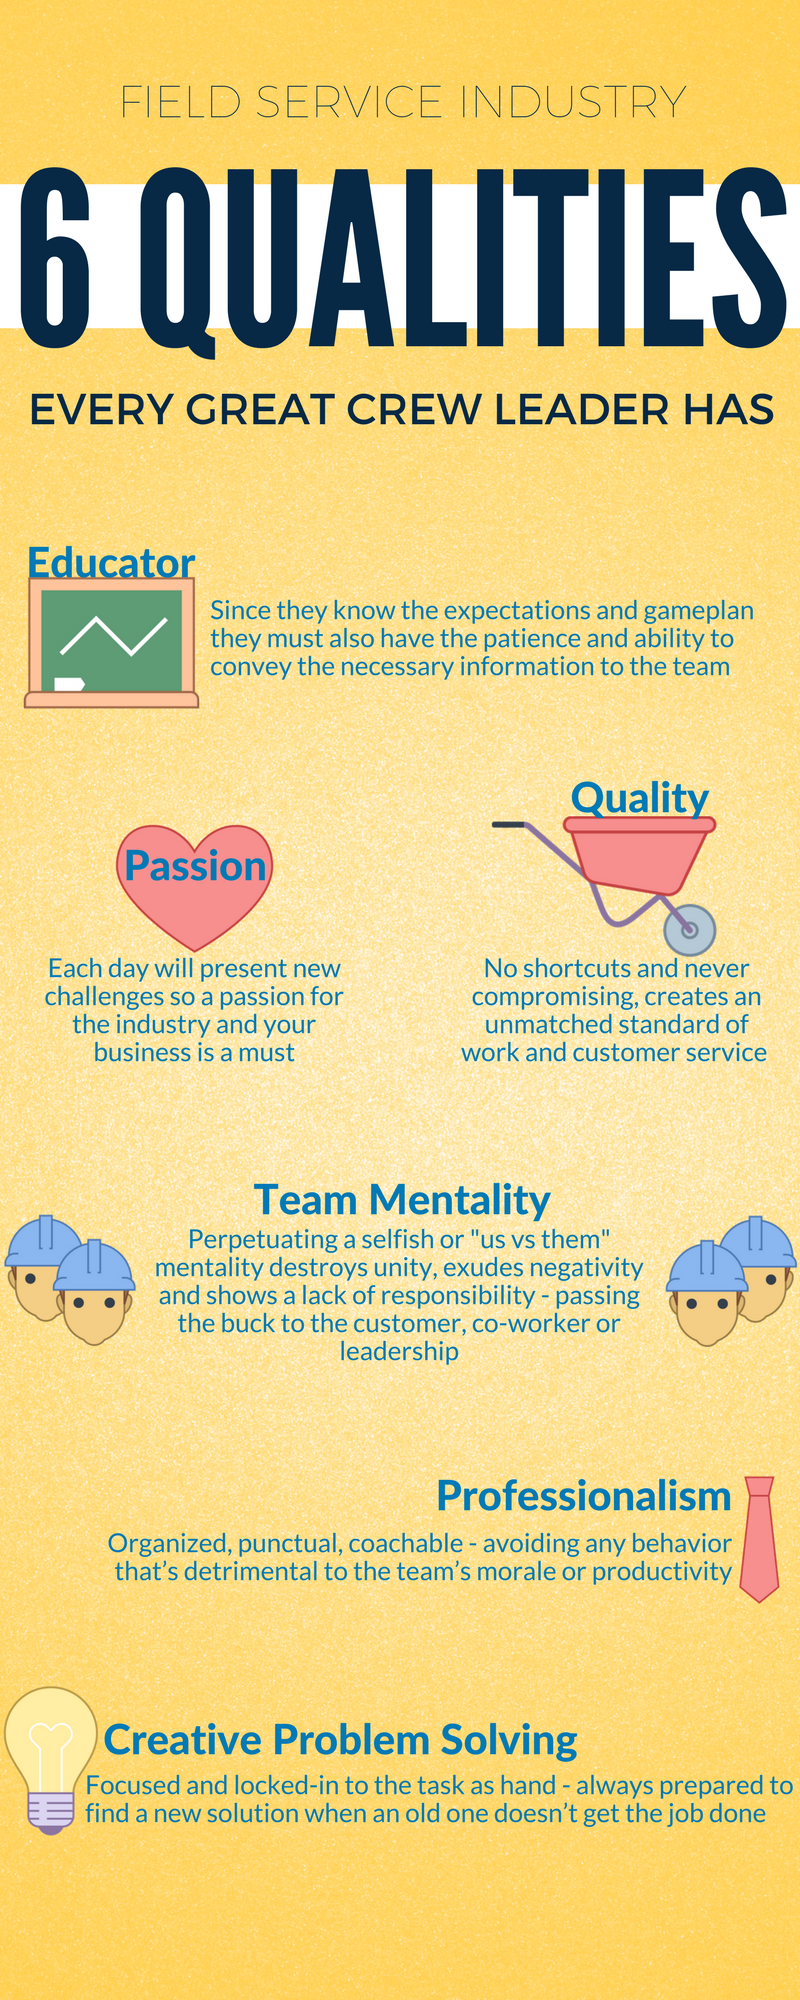 Field Service Industry- 6 Qualities every great crew leader has.png